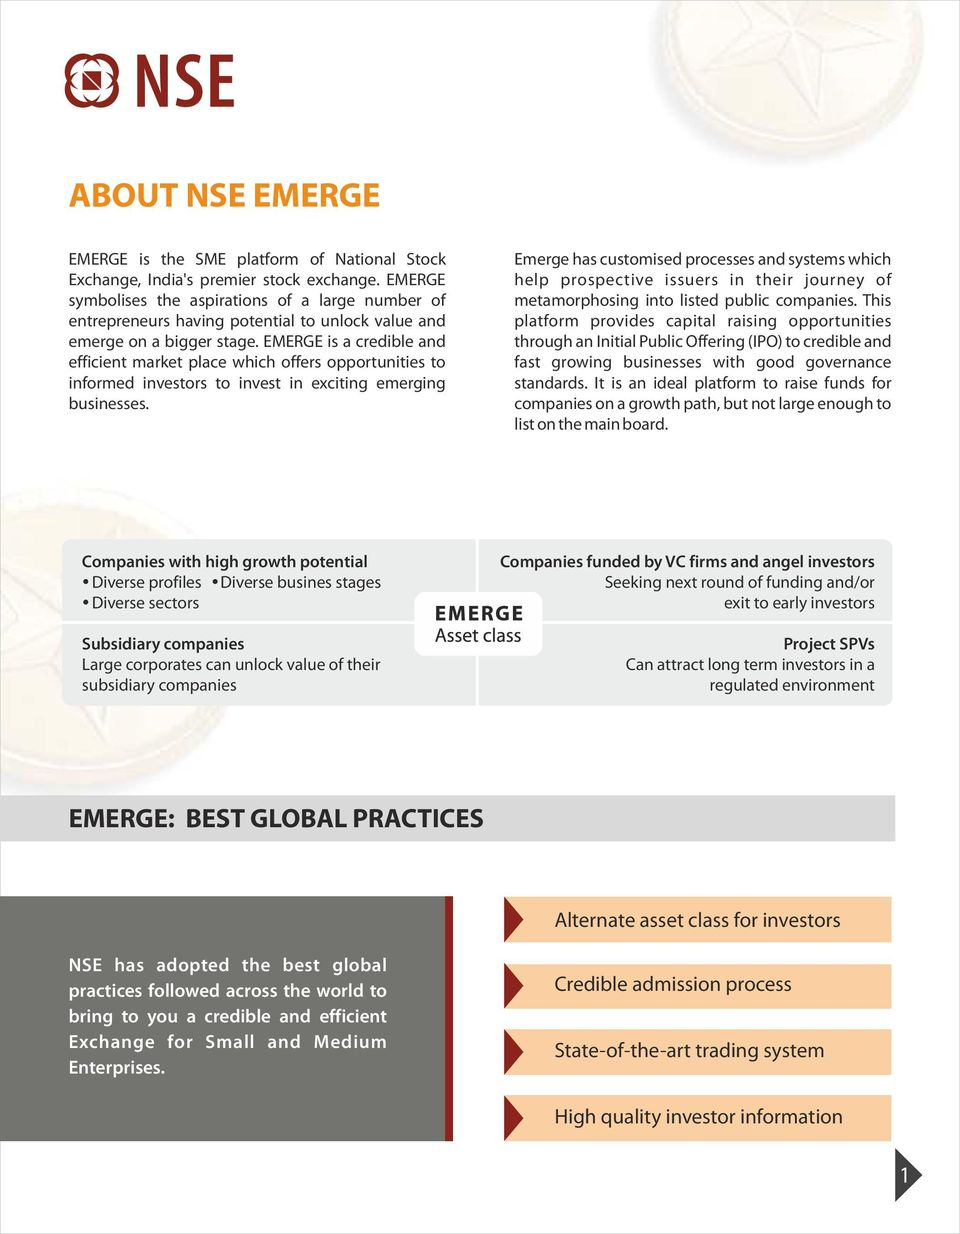 EMERGE is a credible and efficient market place which offers opportunities to informed investors to invest in exciting emerging businesses.